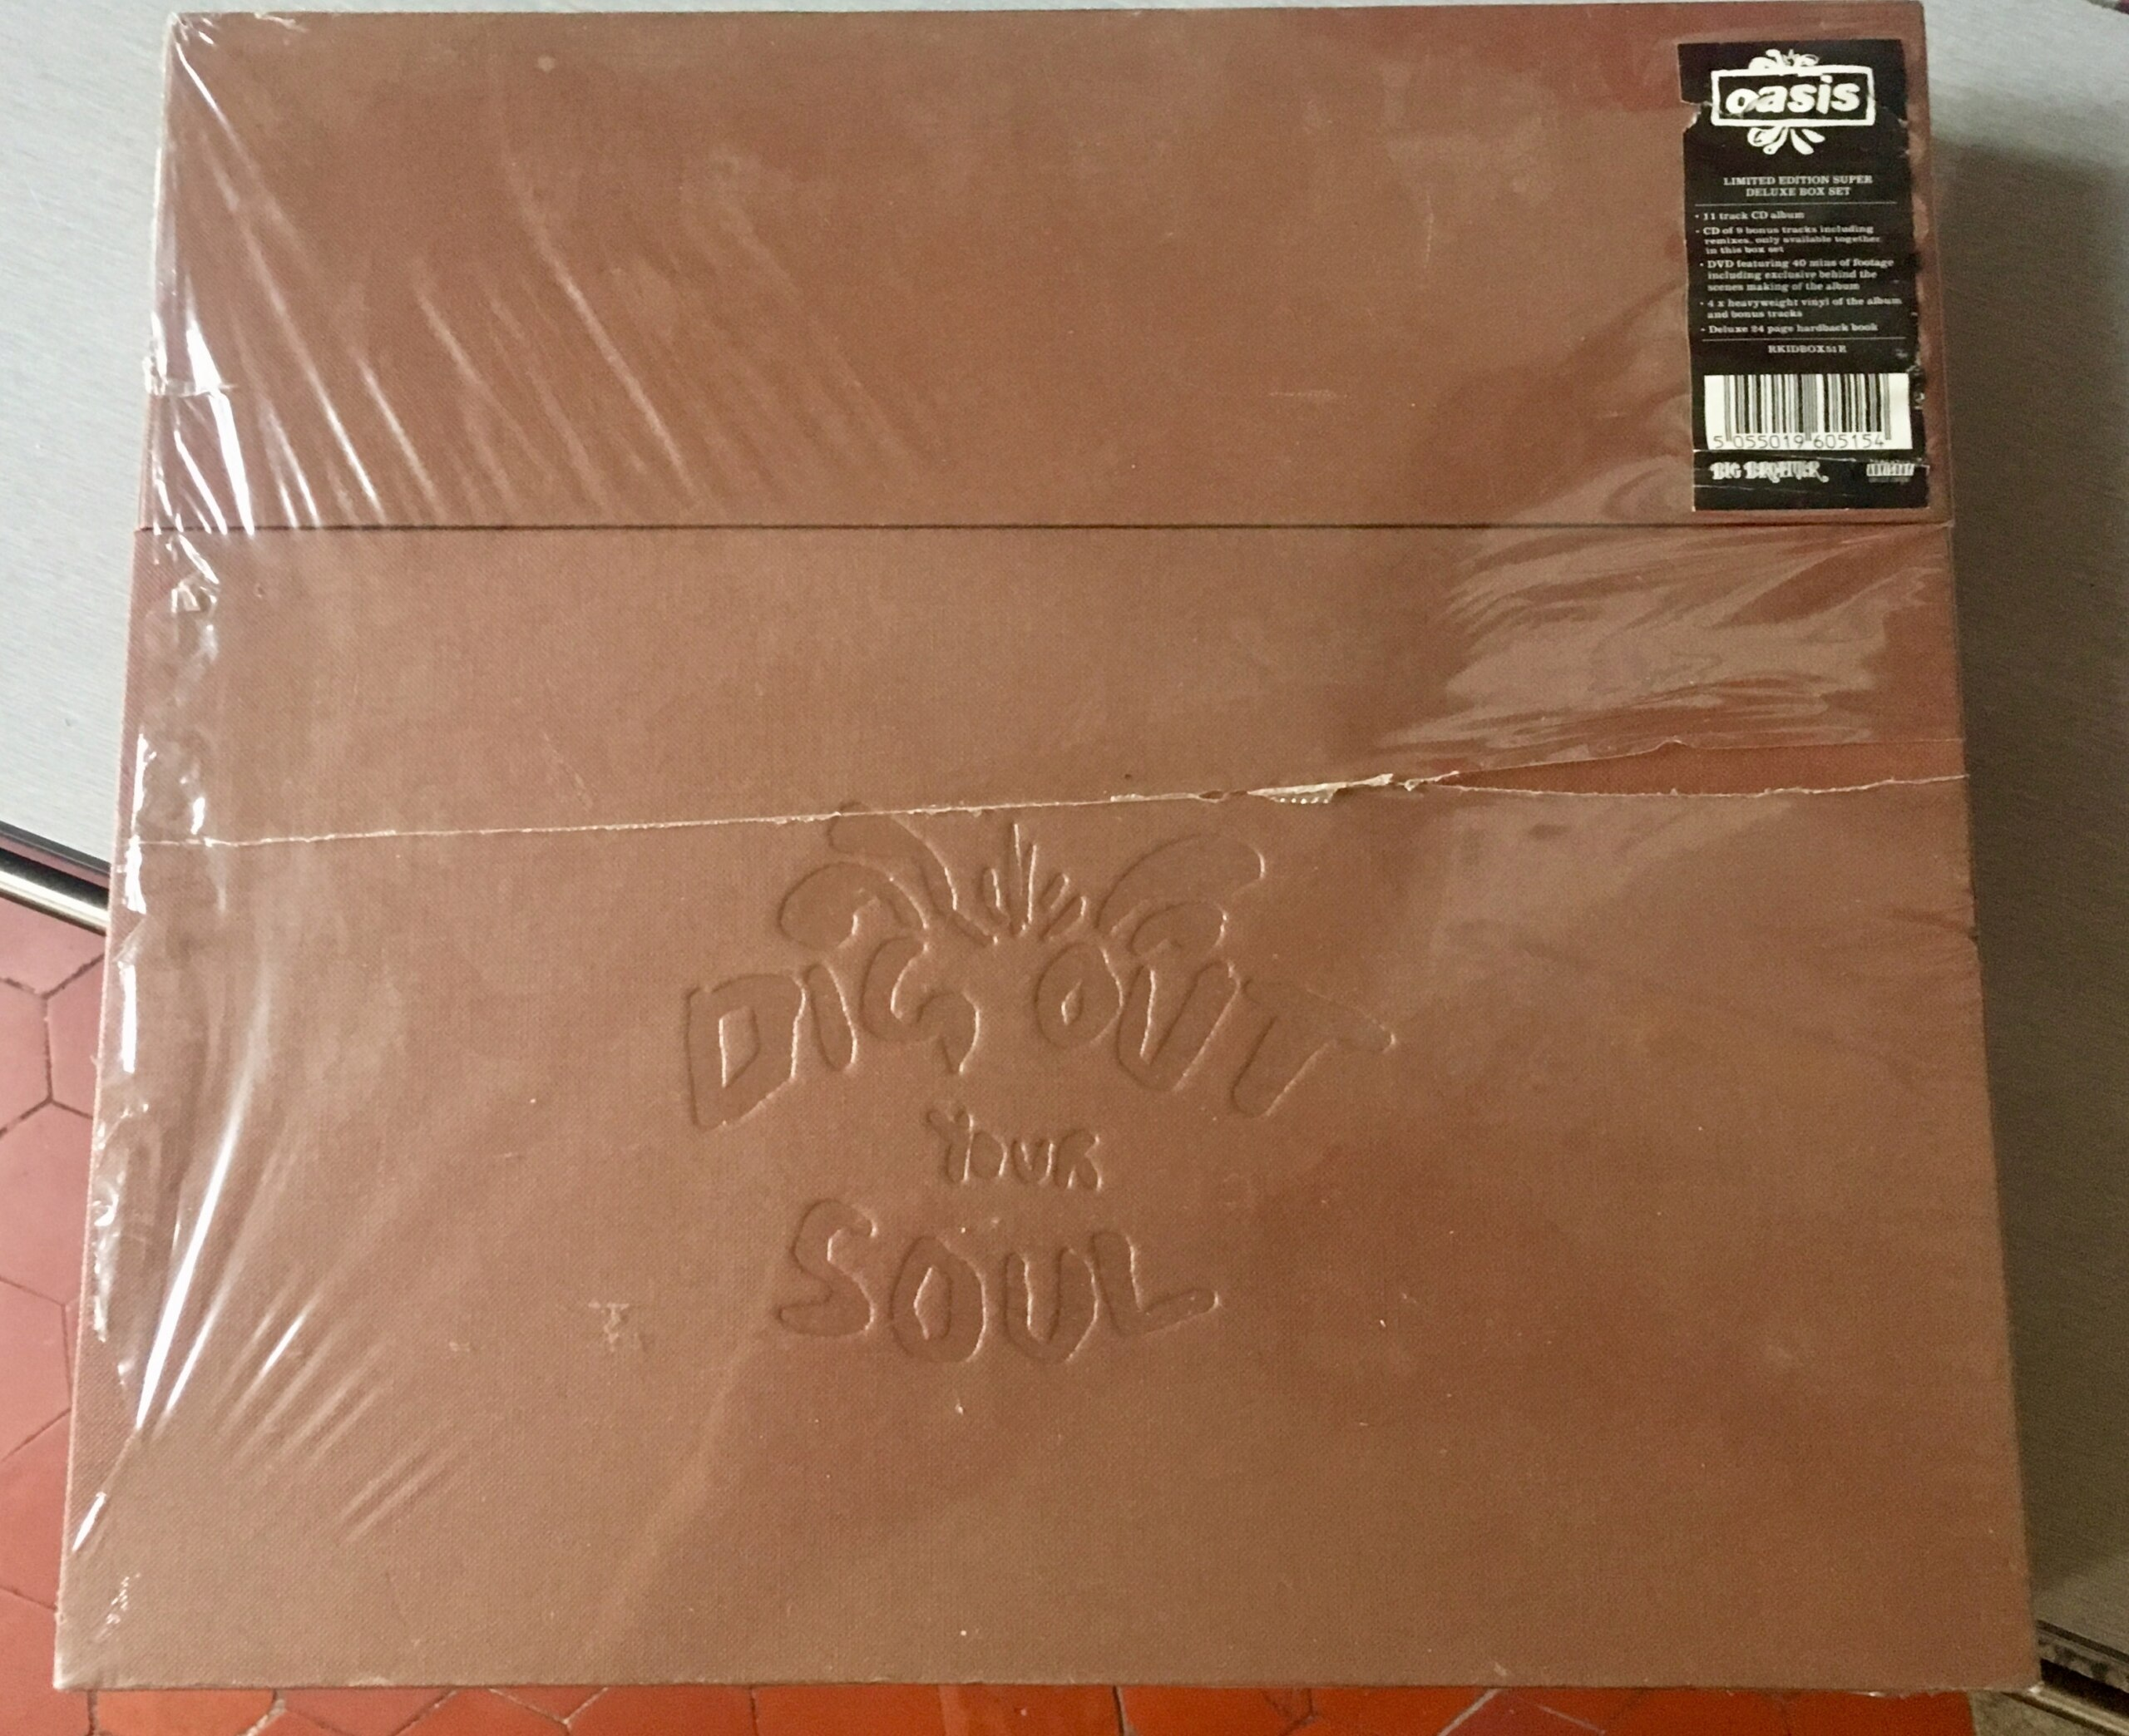 [VDS] OASIS - Dig Out Your Soul  Limited Edition Super Deluxe Box Set Img_3819